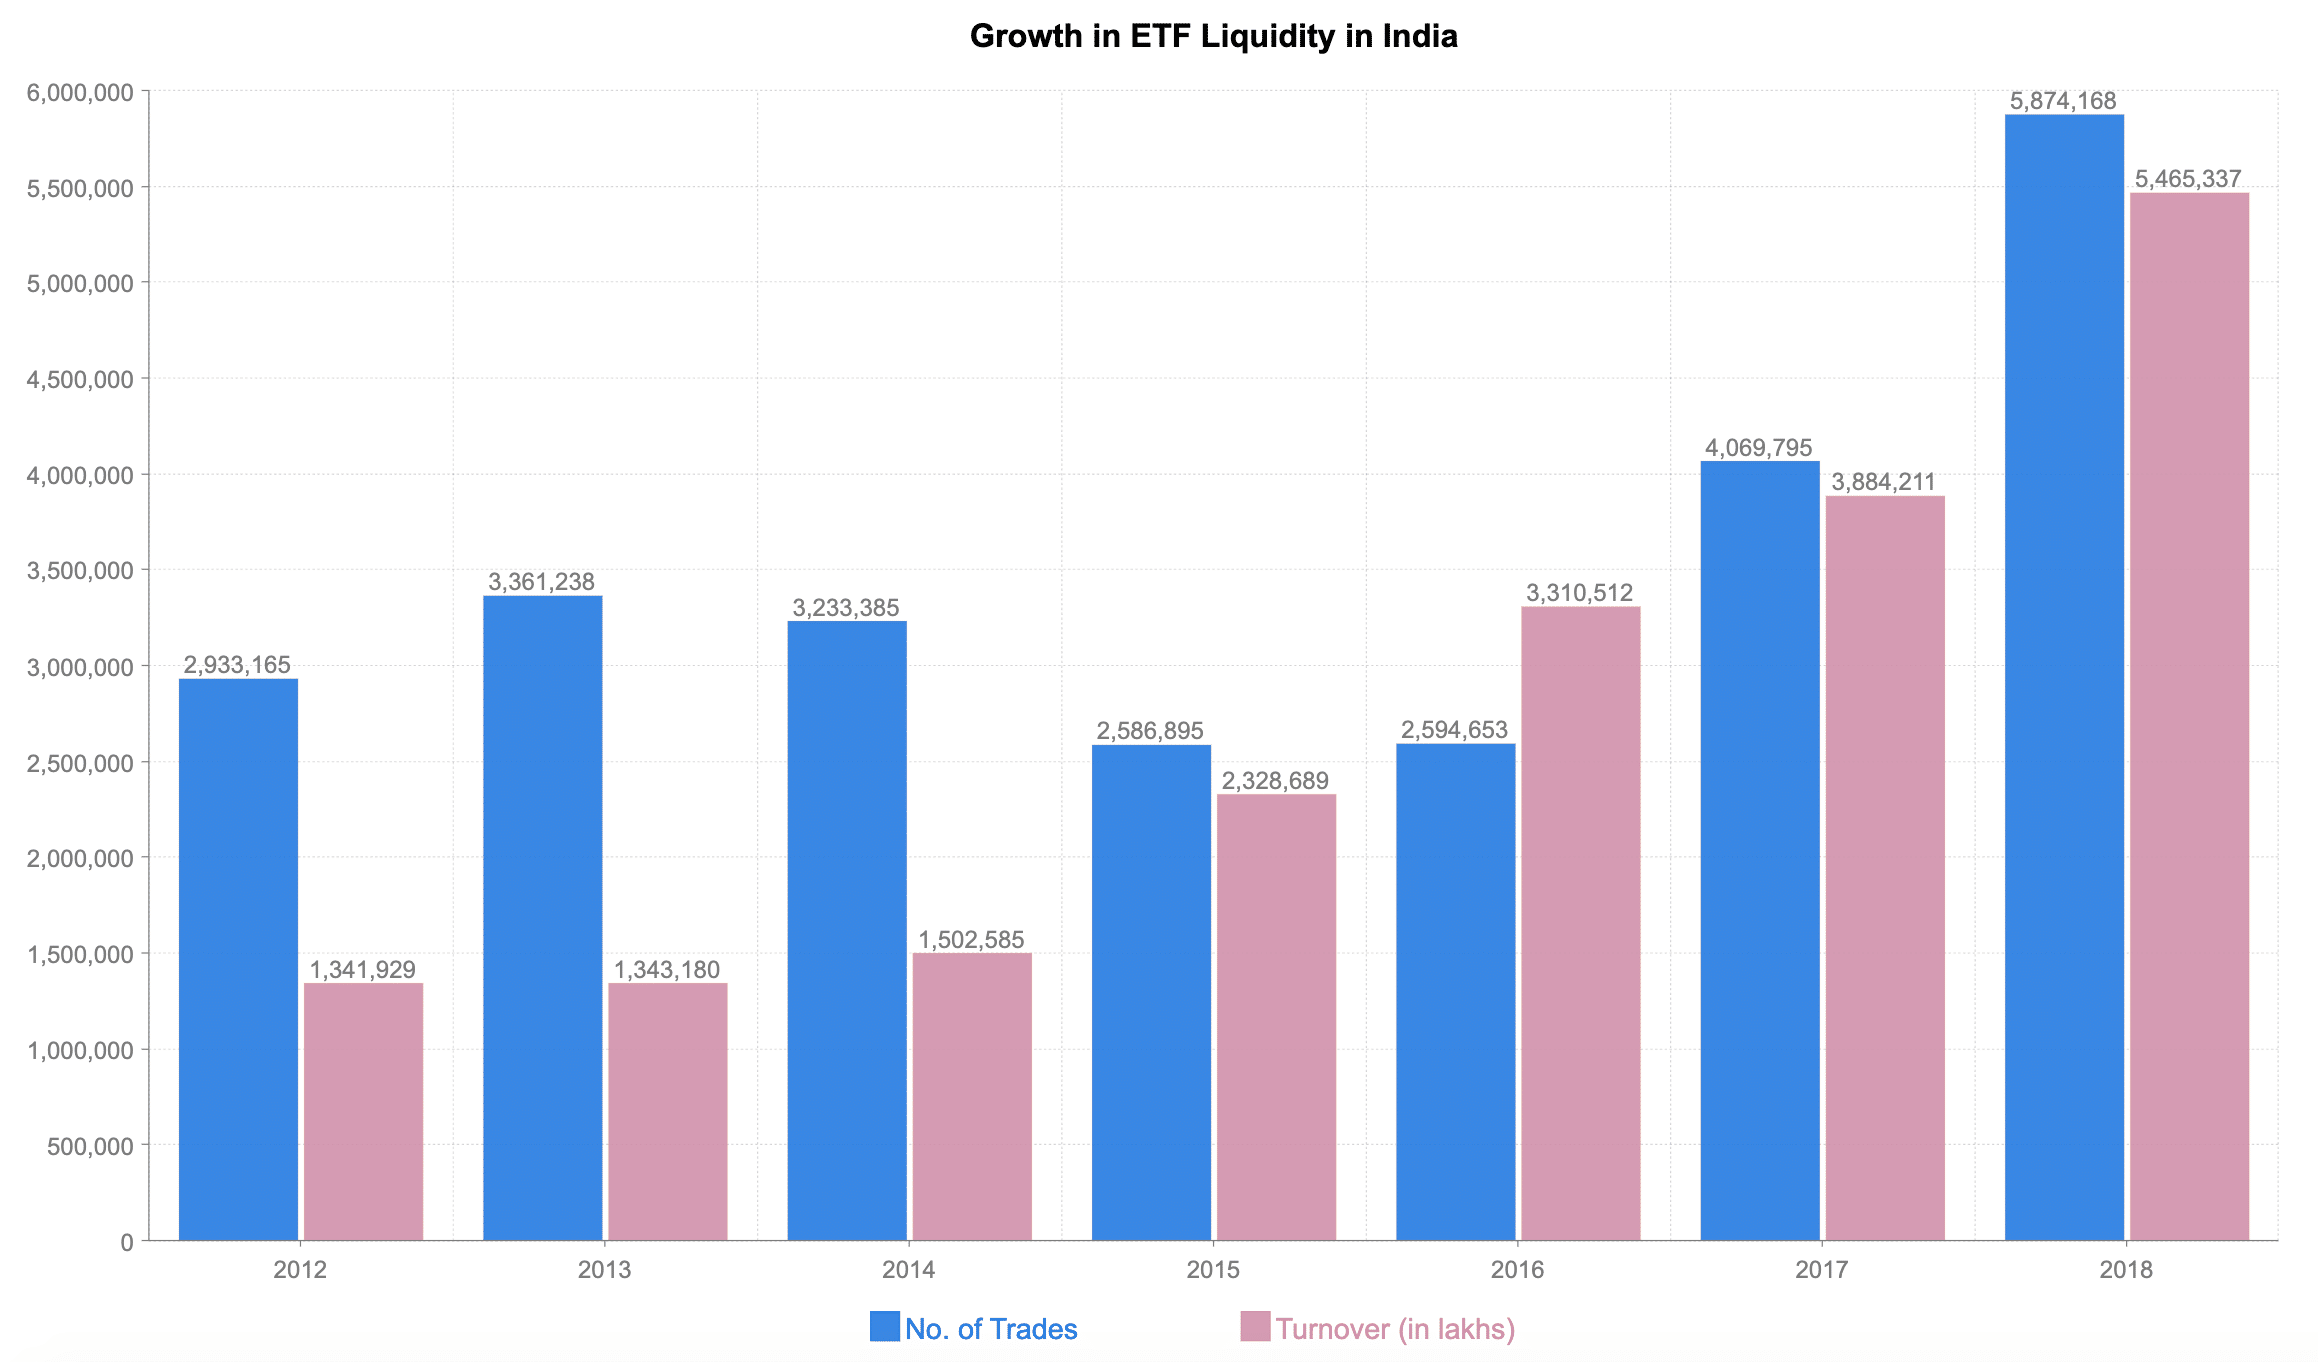 ETF Liquidity Growth